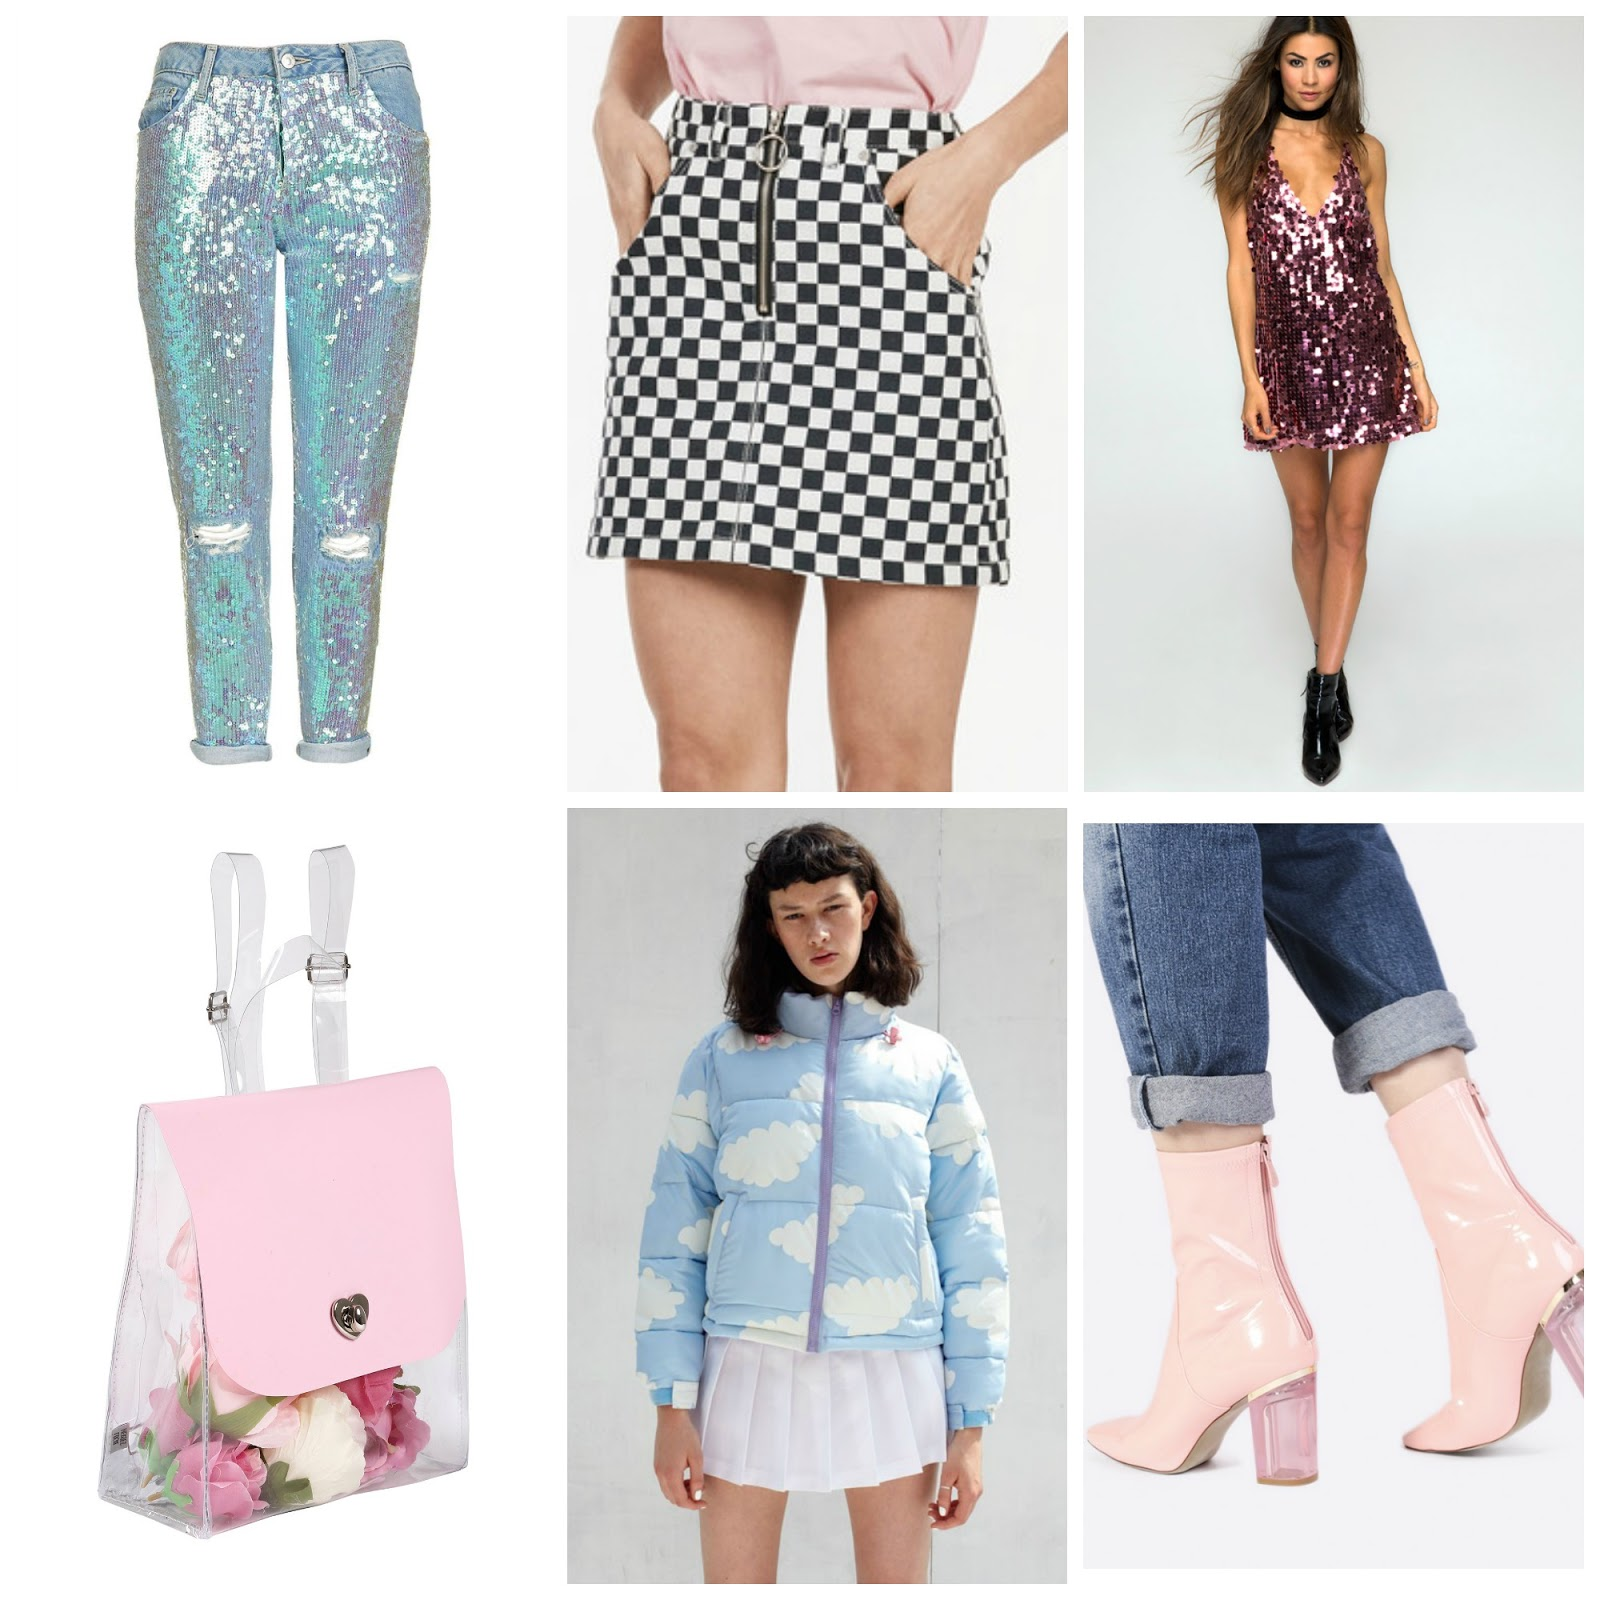 640bdf49f2 Topshop MOTO Sequin Hayden Jeans // UNIF Apex Skirt // Motel Finn Dress in  Metallic Rose Disc Sequin // Local Heroes Candy Clear Backpack // Lazy Oaf  Cloud ...